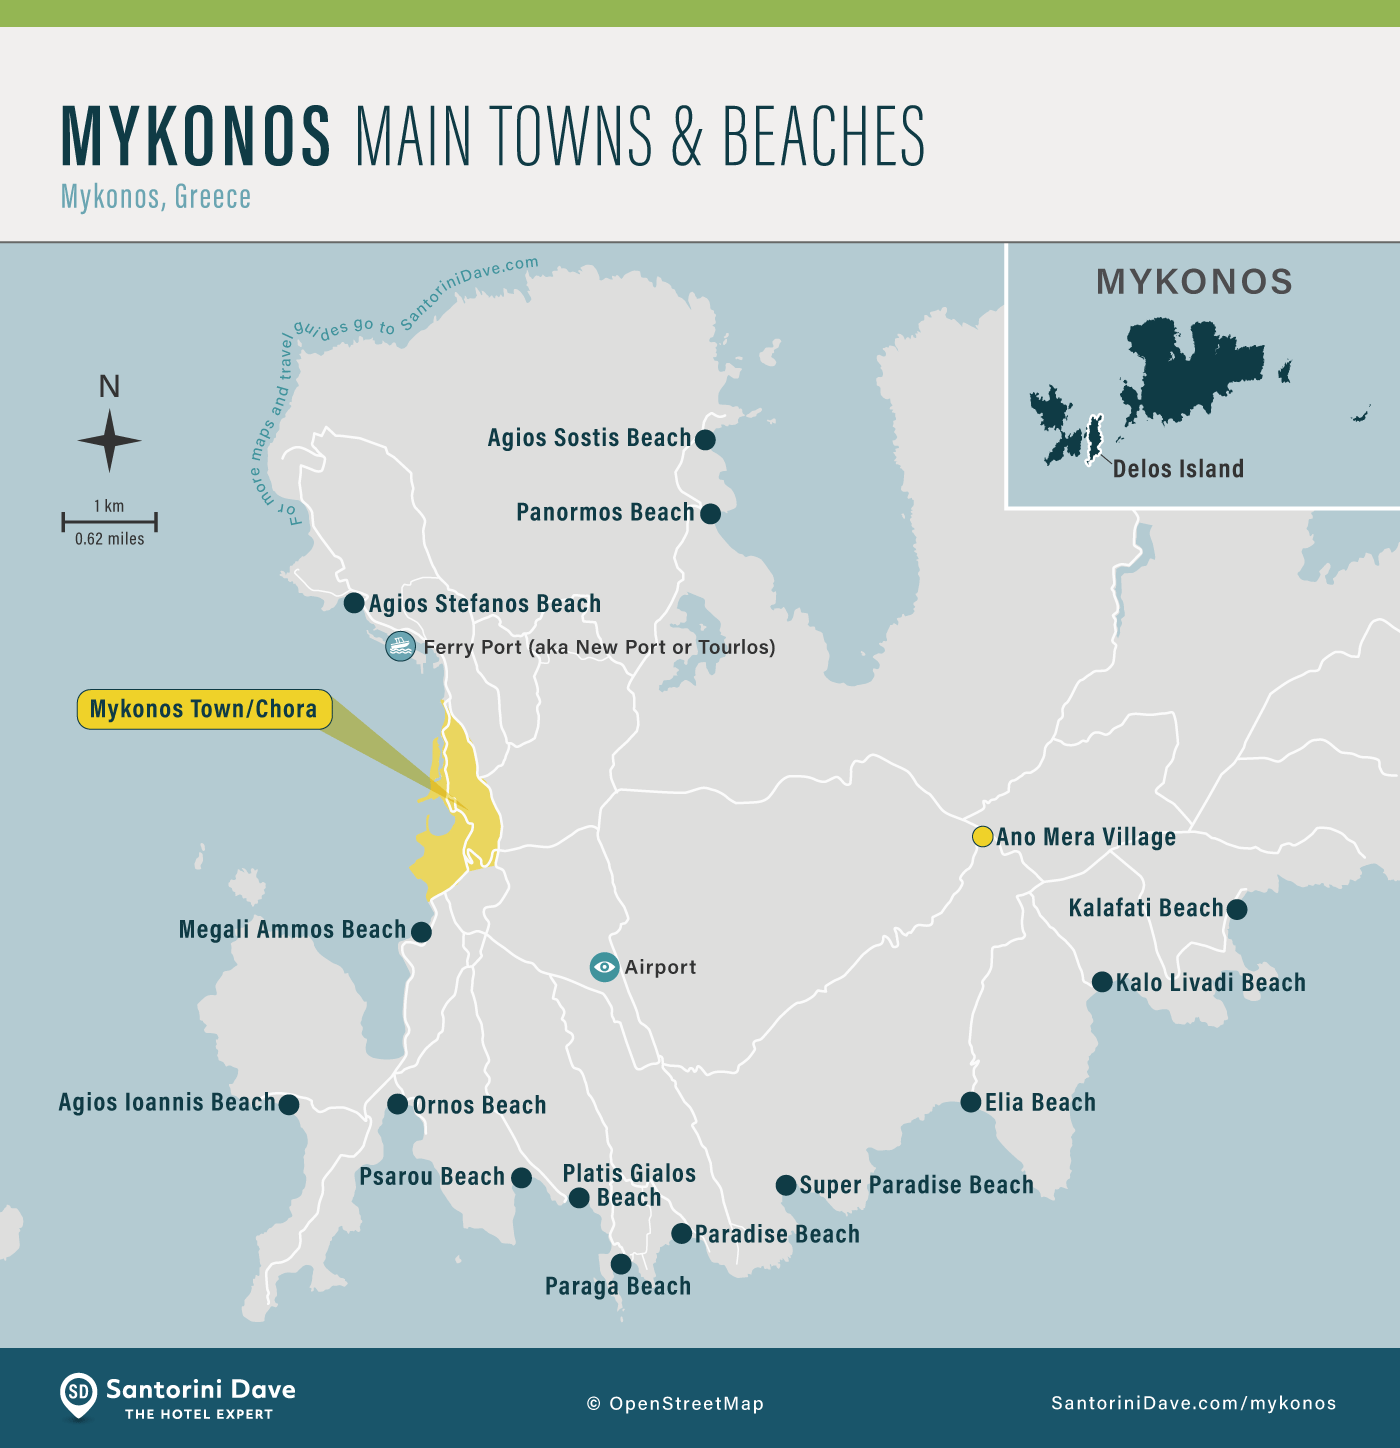 Map showing the main towns and beaches on Mykonos